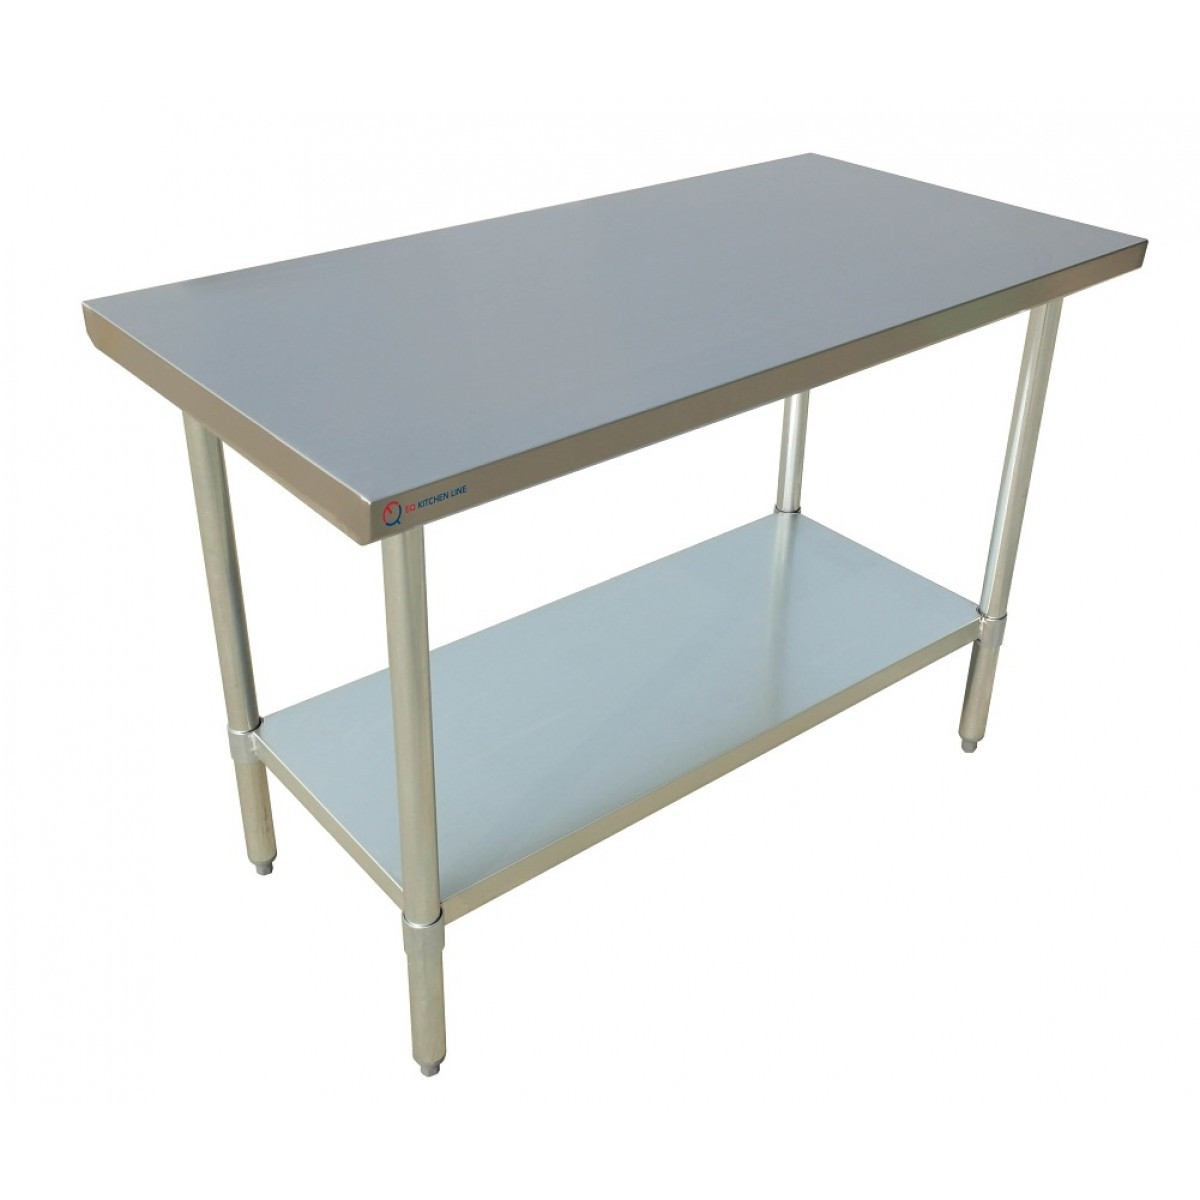 Stainless Restaurant Table Eq Kitchen Line Stainless Steel Restaurant Kitchen Prepare Work Surface Table 24